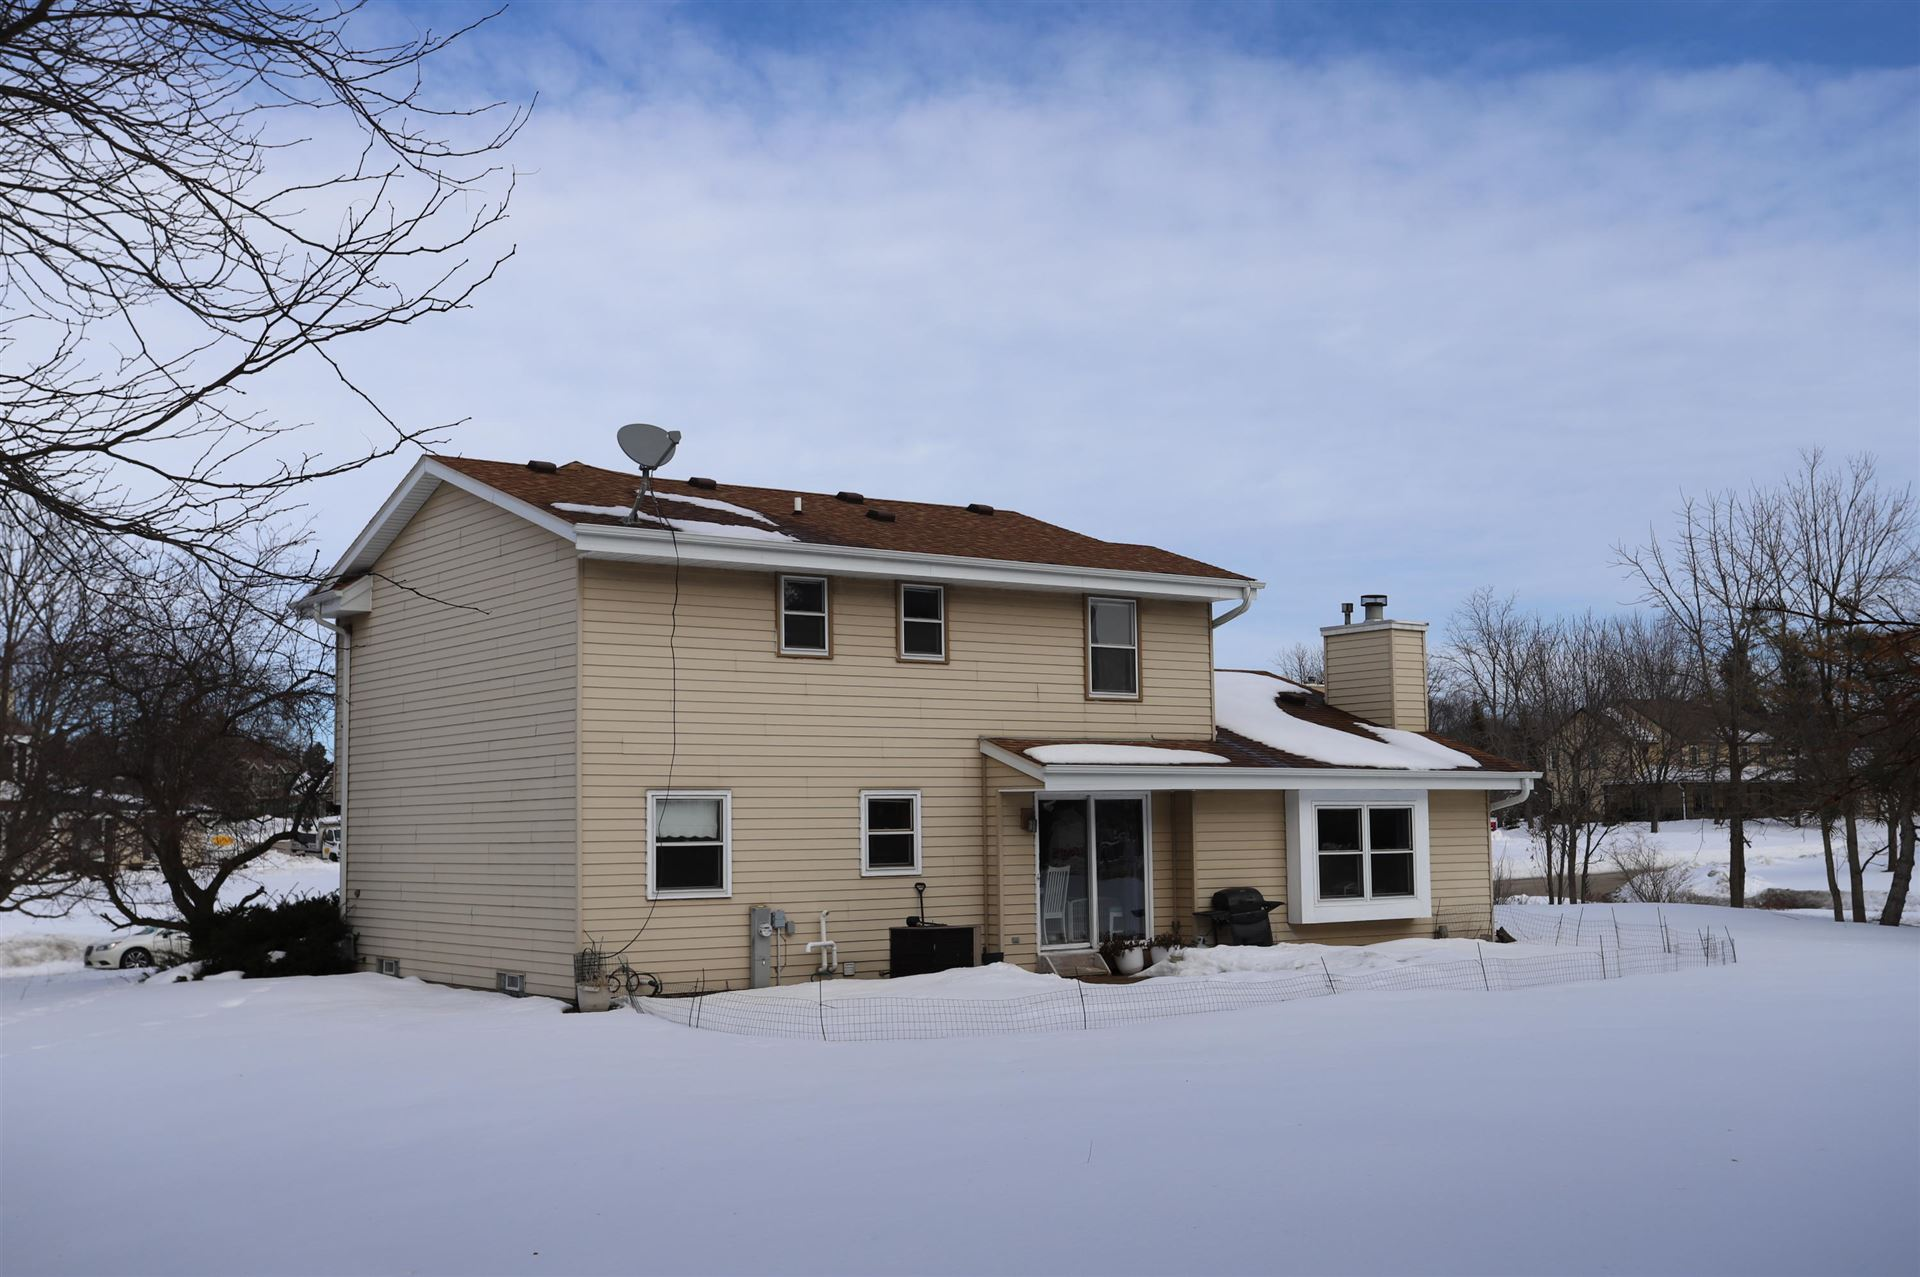 N97W16853 Navajo DR, Germantown, WI 53022 - #: 1728449